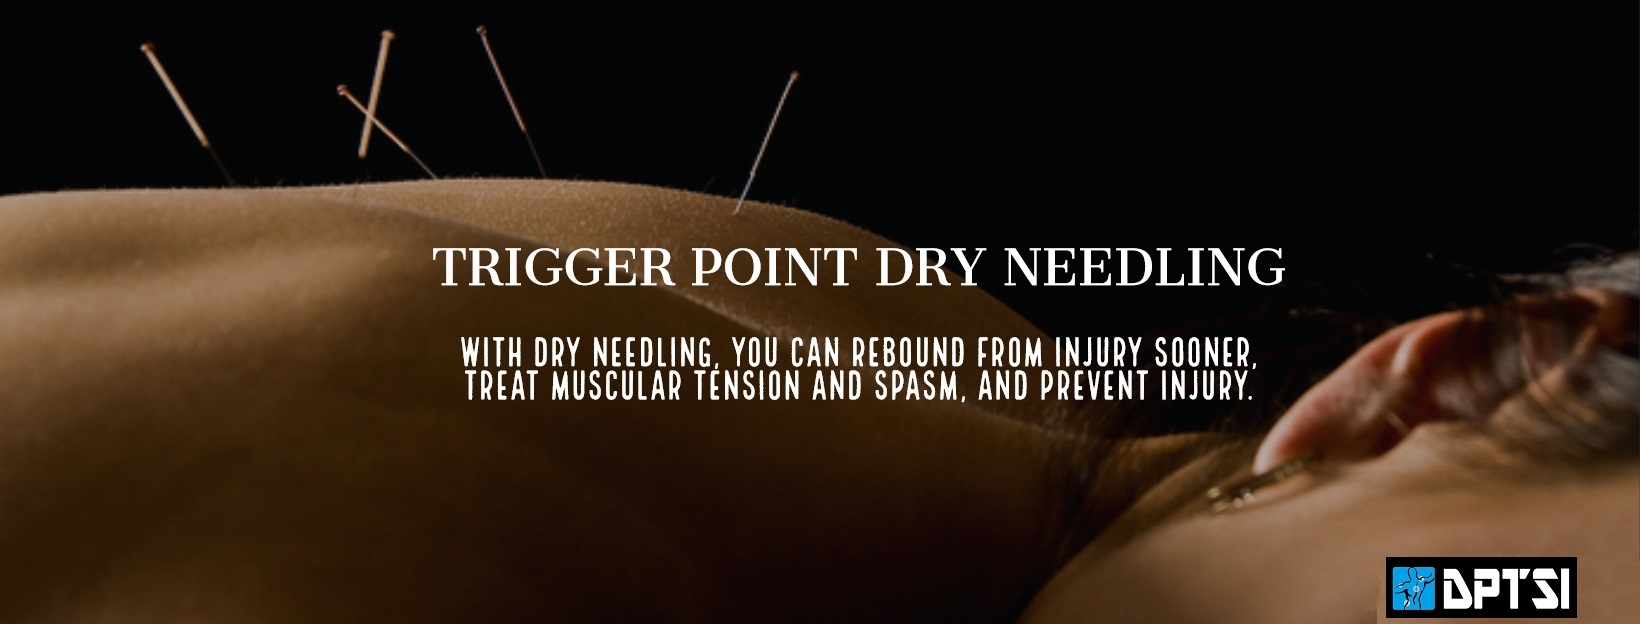 image-751998-Dry_Needling_Cover_Photo2.jpg